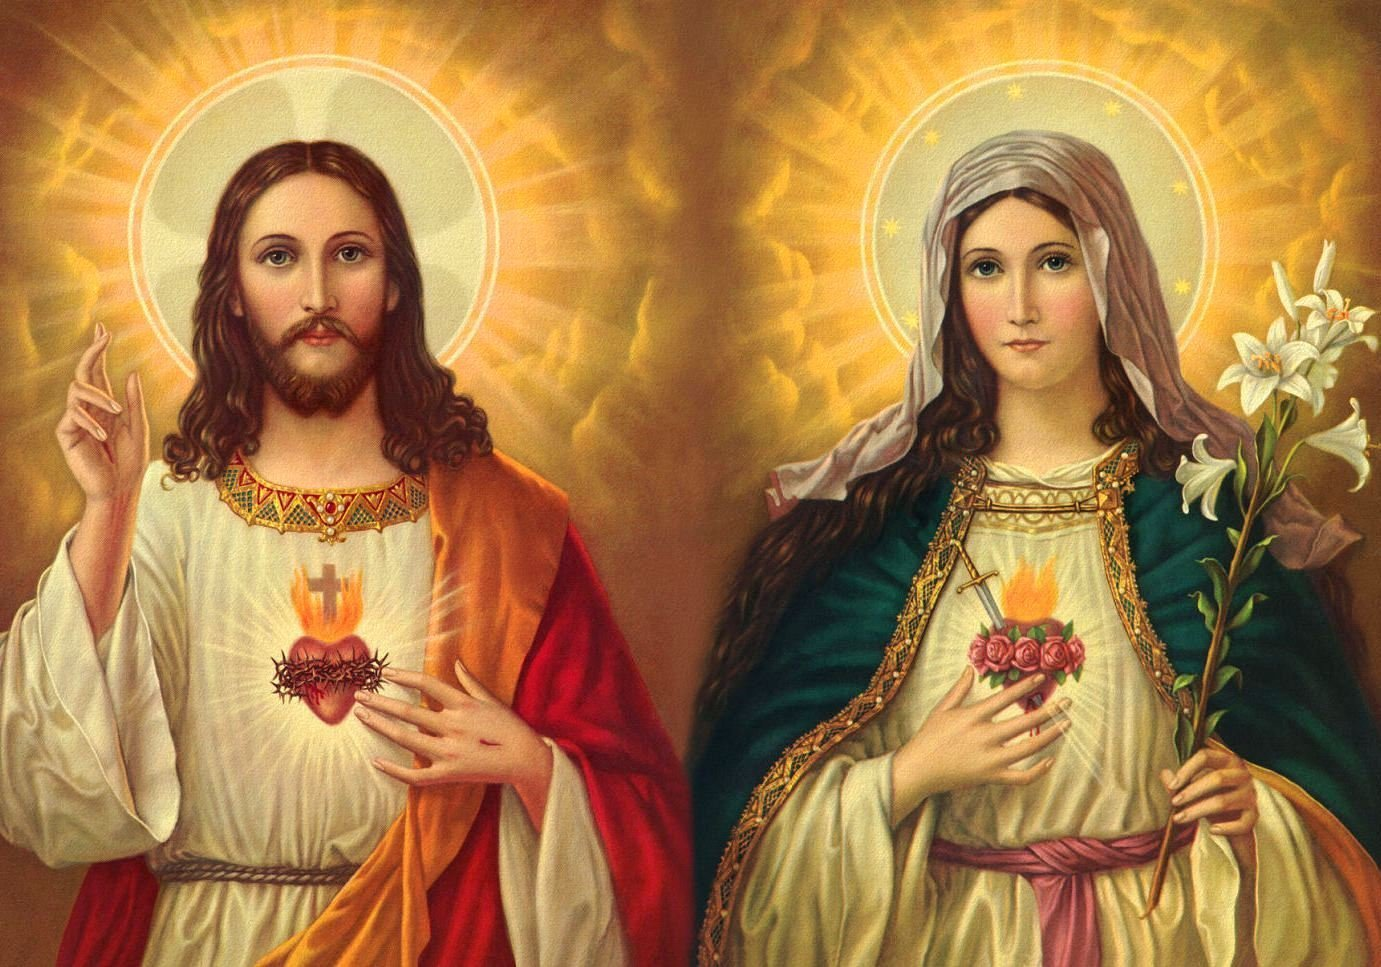 Amazon.com: Jesus and Mary POSTER A2 print Sacred Heart of Jesus and Virgin  Mary painting Religious Artwork Catholic pictures Christian Holy Wall Art  Decor for Home Room: Handmade